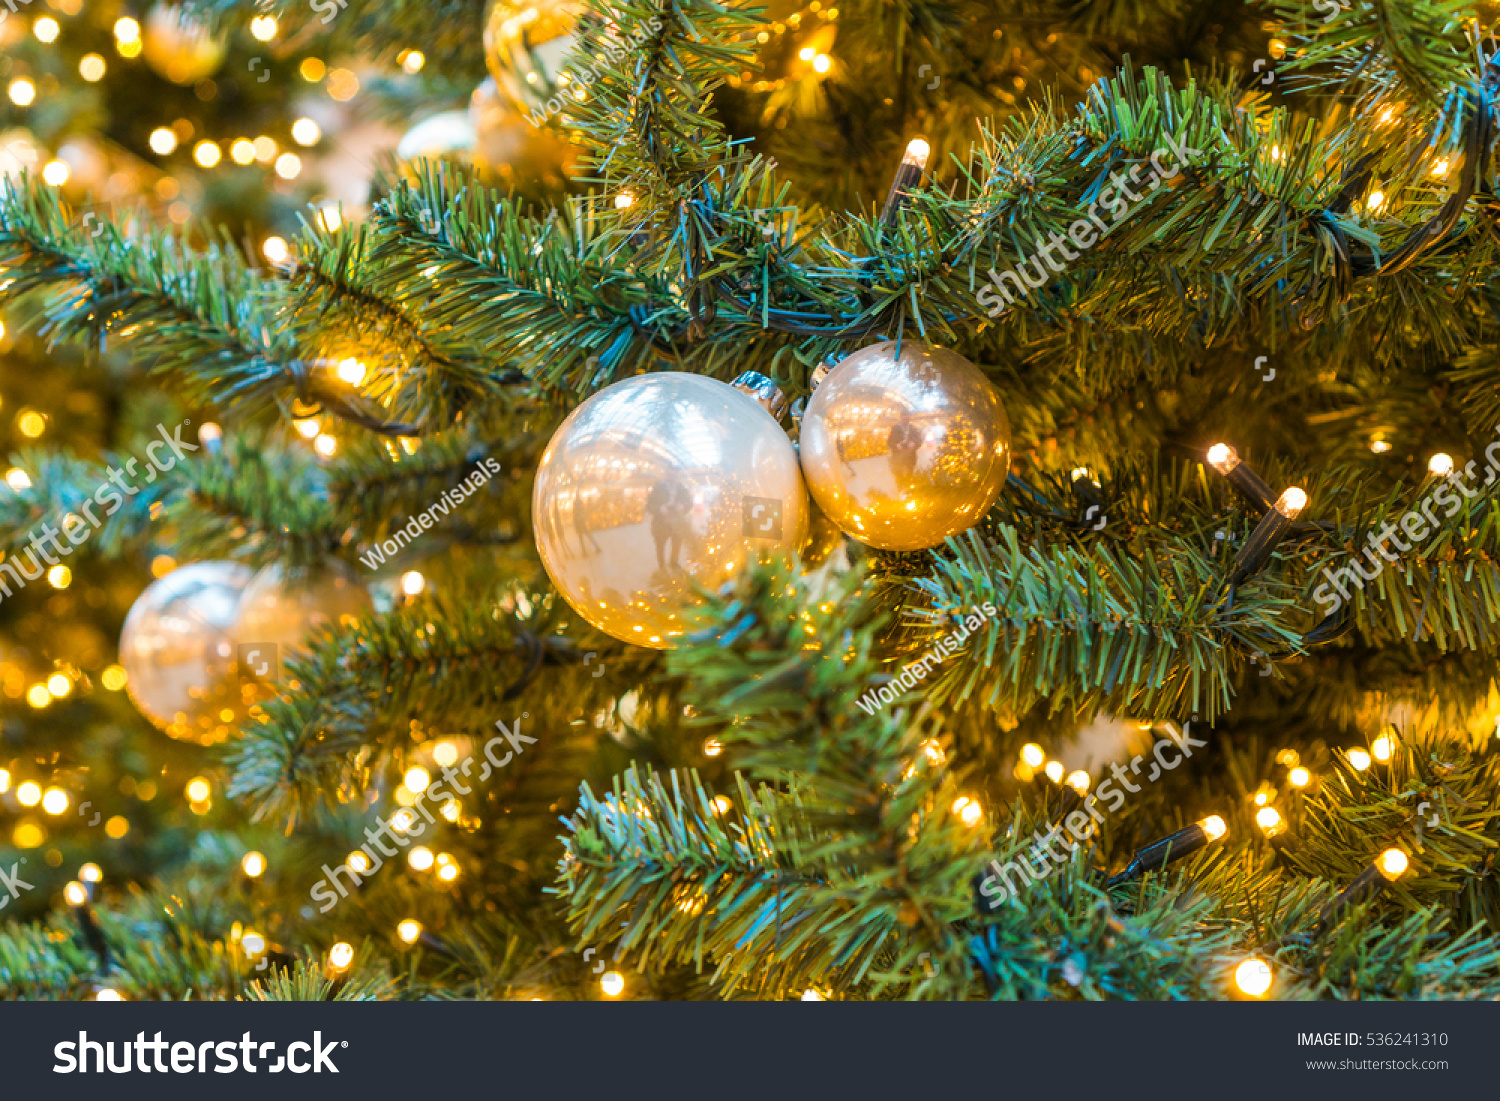 id 536241310 - Yellow Christmas Decorations